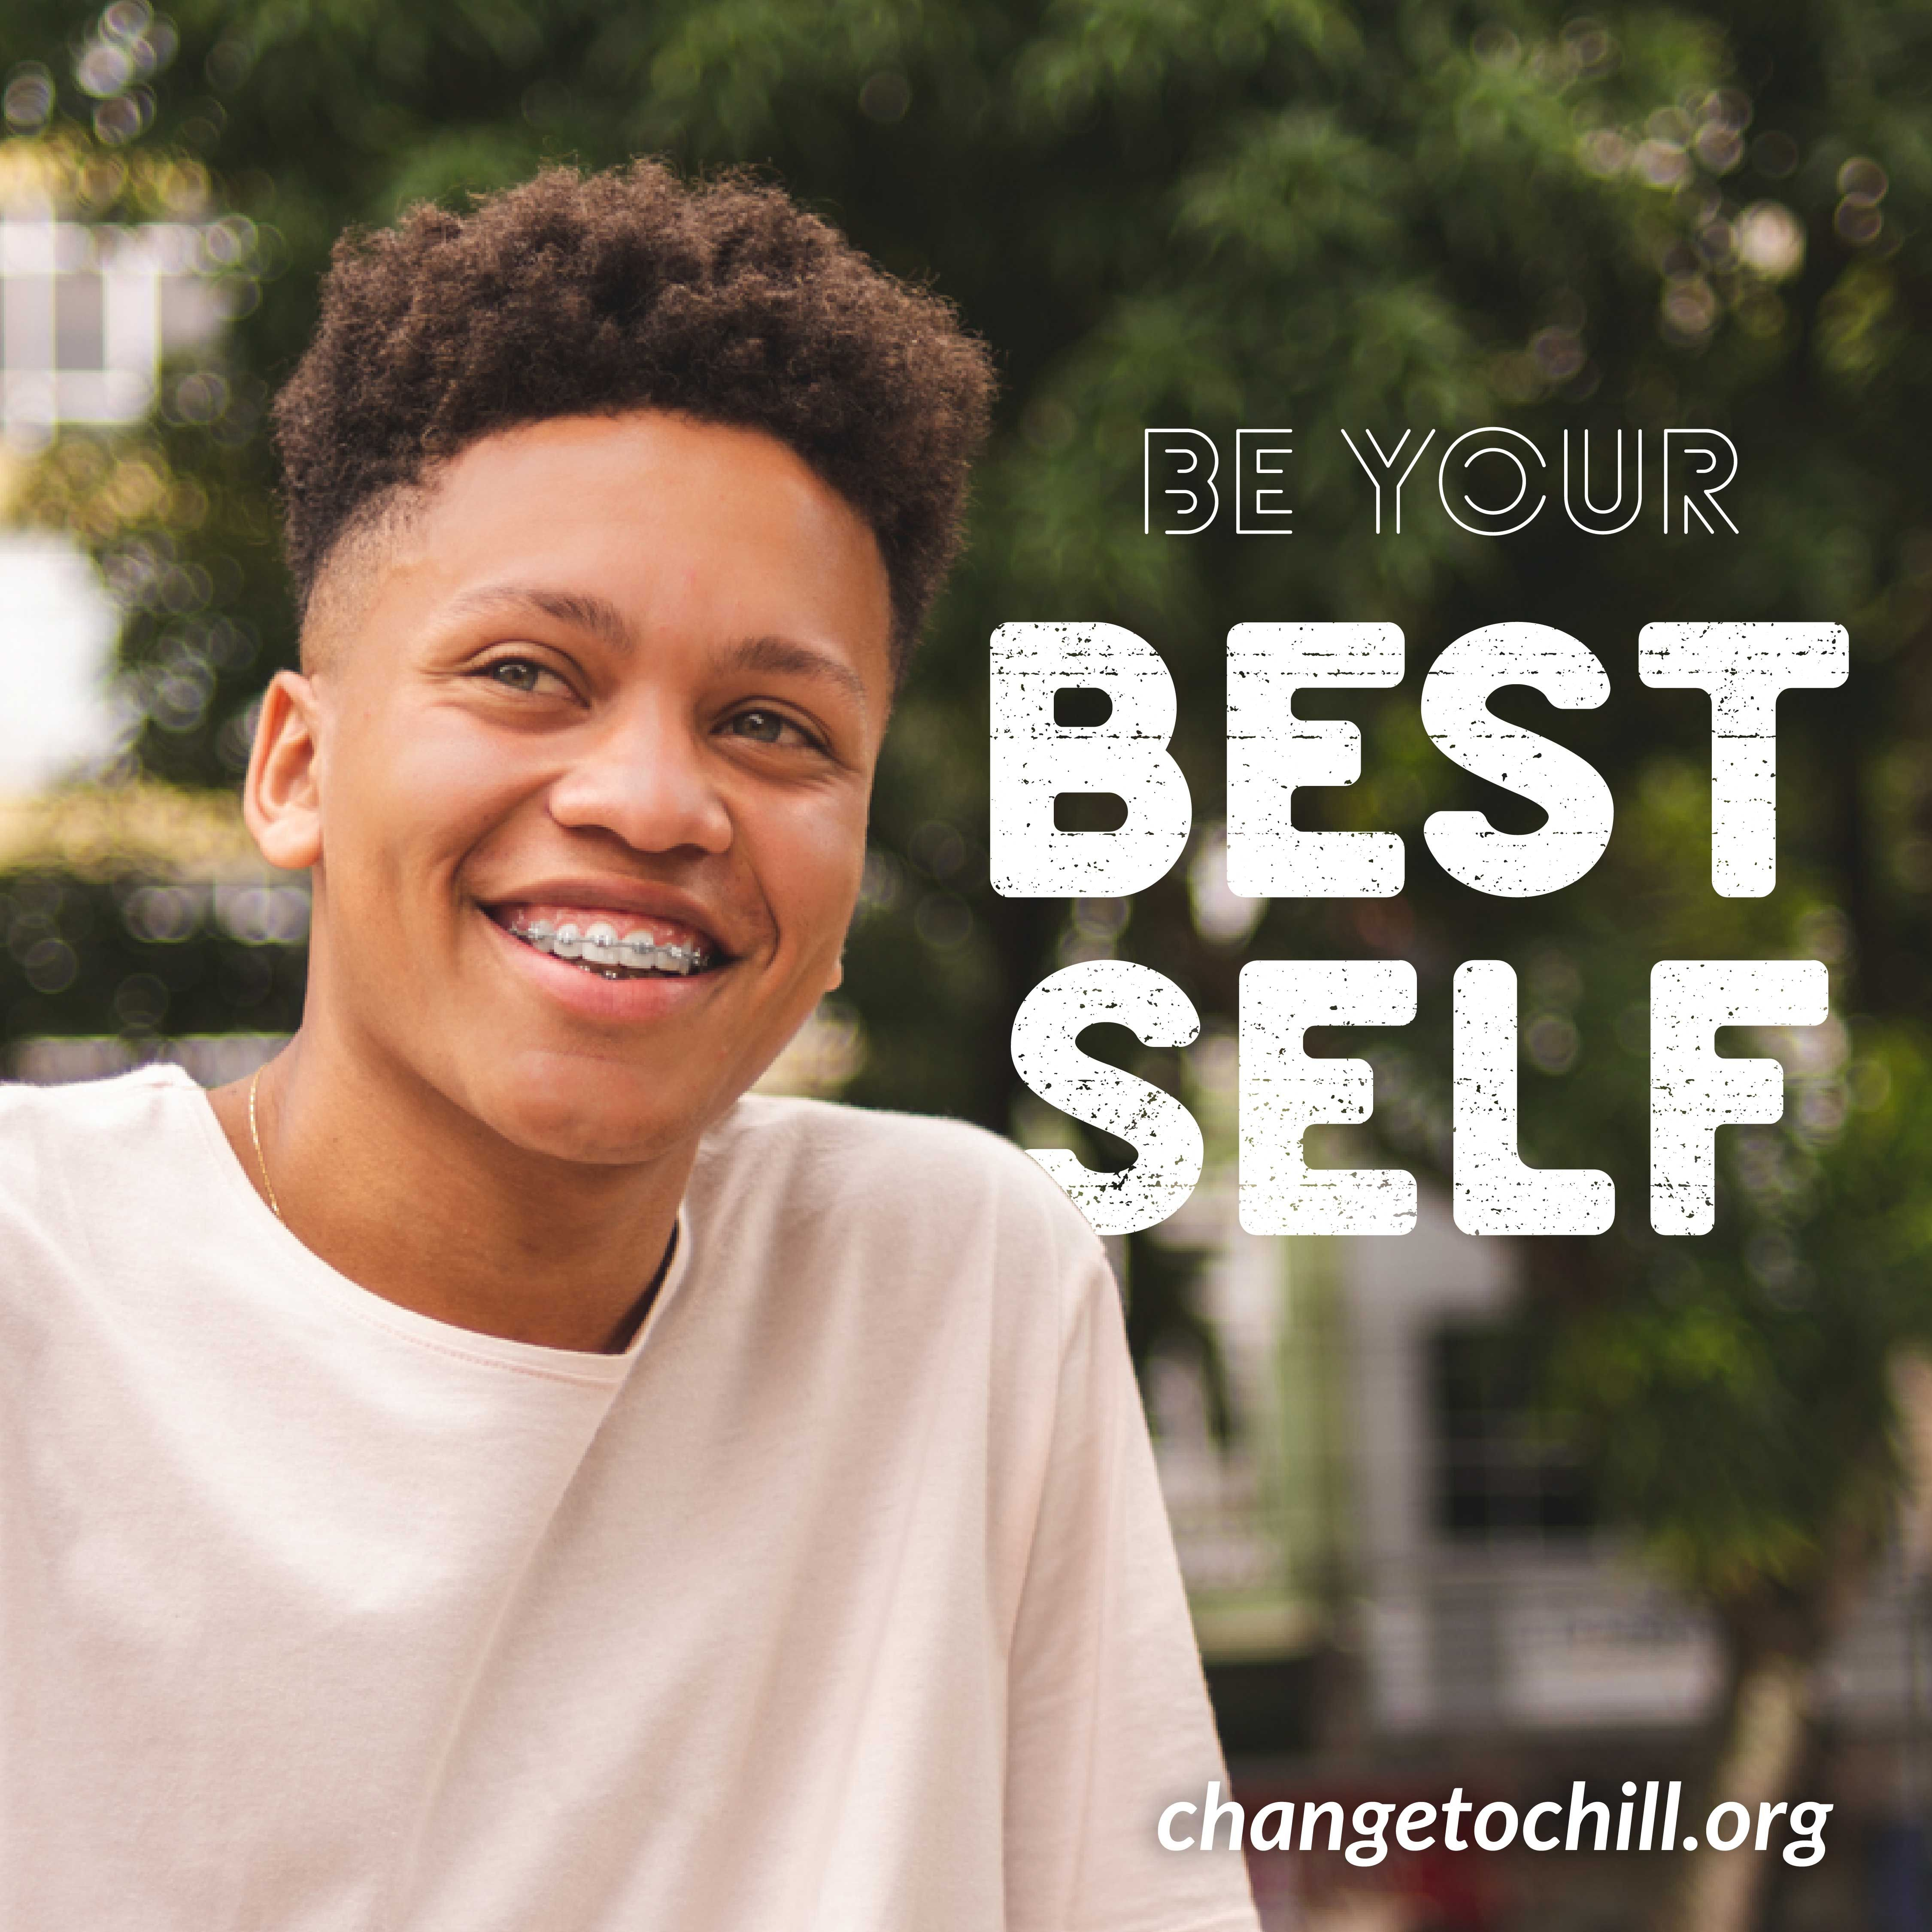 Be your best self in 2020 guided imagery guided imagery